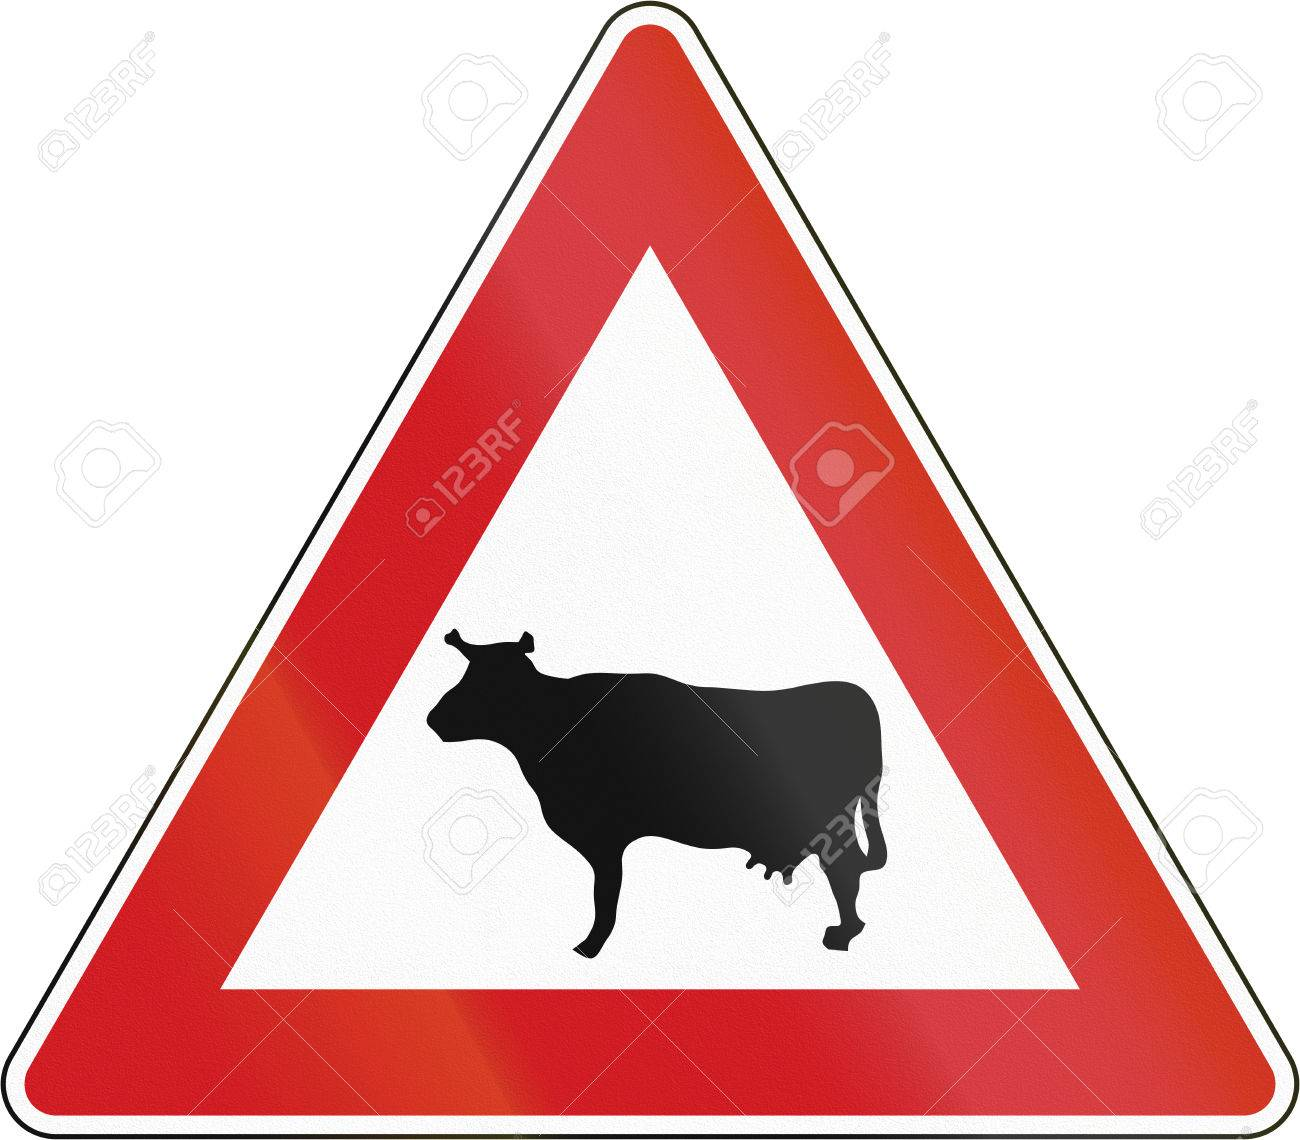 Czech Sign Warning About Cattle Crossing Or Standing On The Road Stock Photo Picture And Royalty Free Image Image 40471407